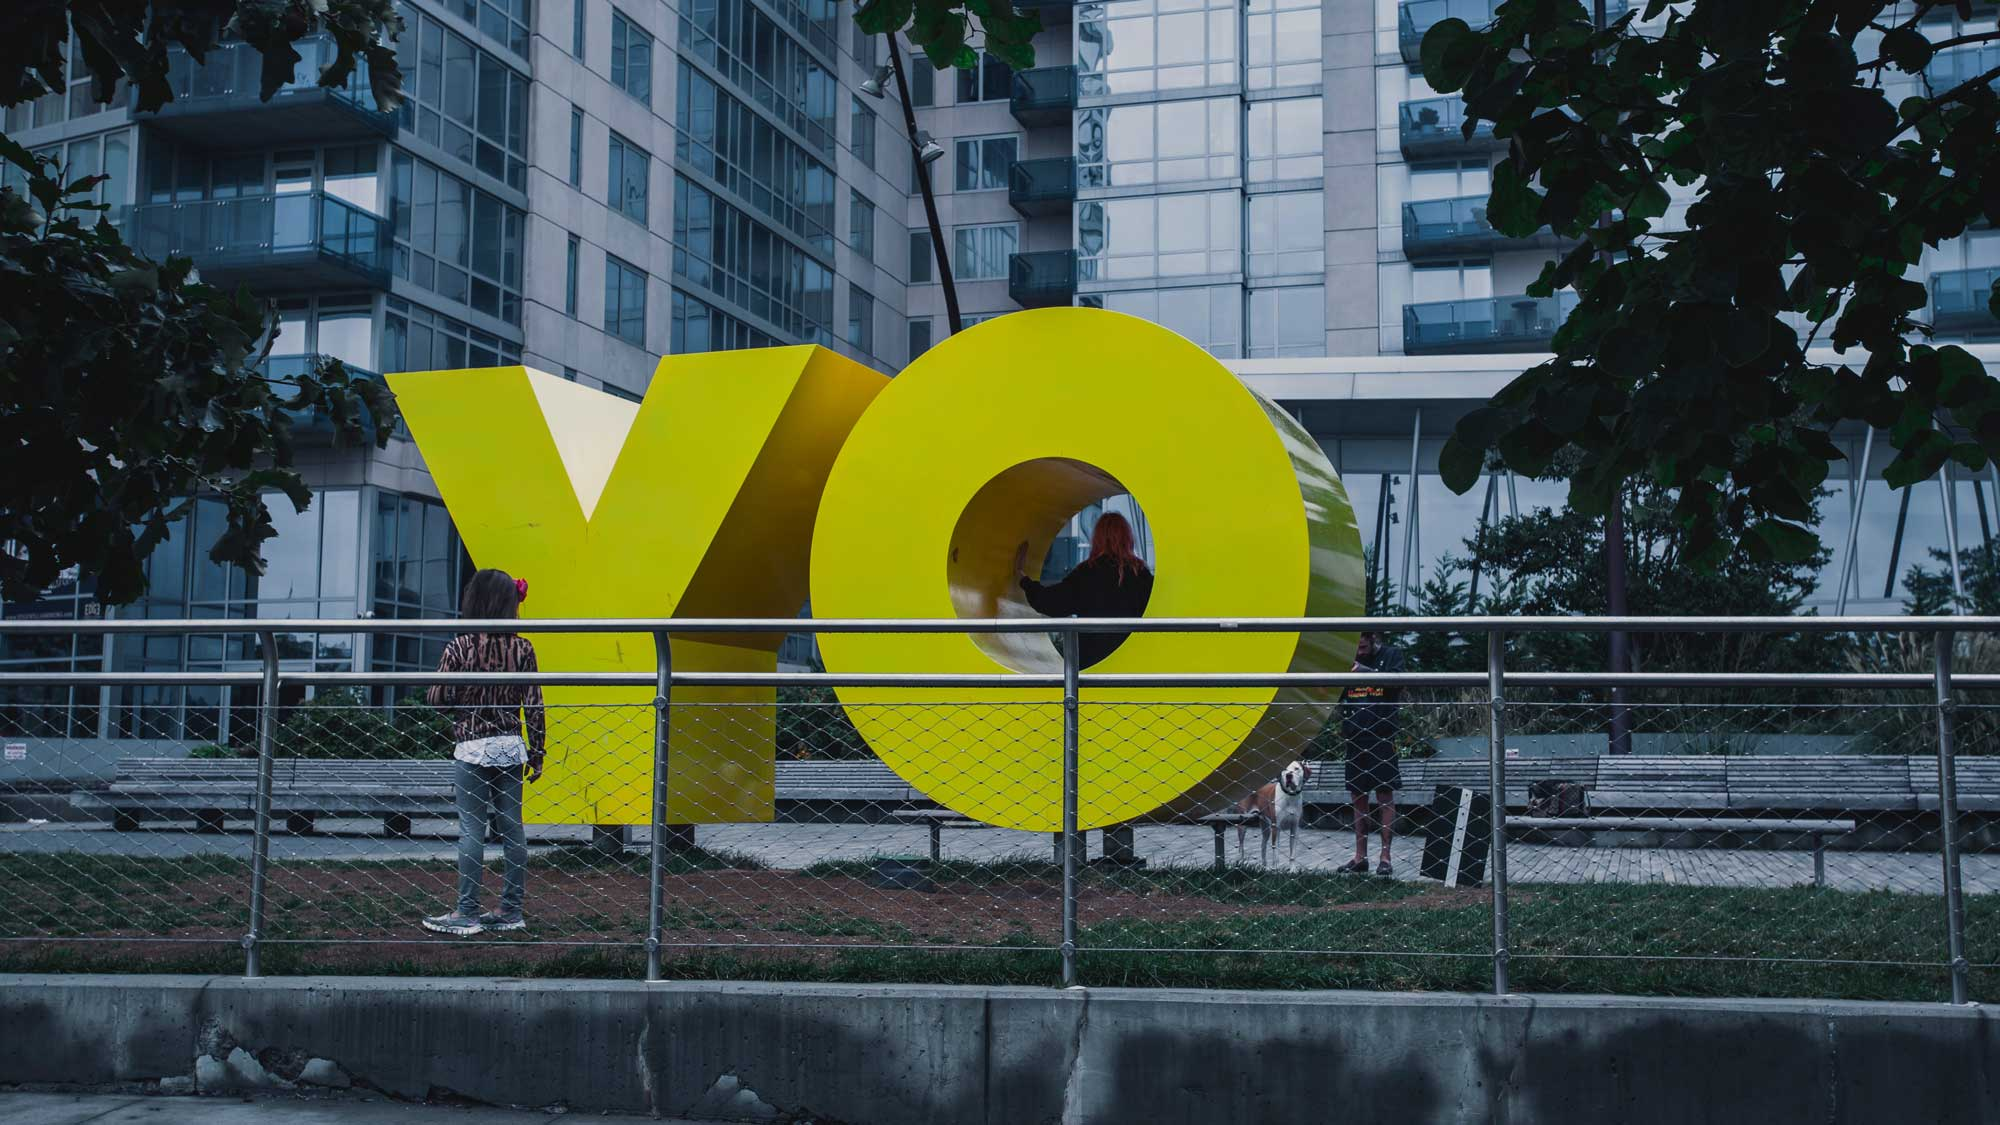 Yo sculpture, Photo by Jp Valery on Unsplash